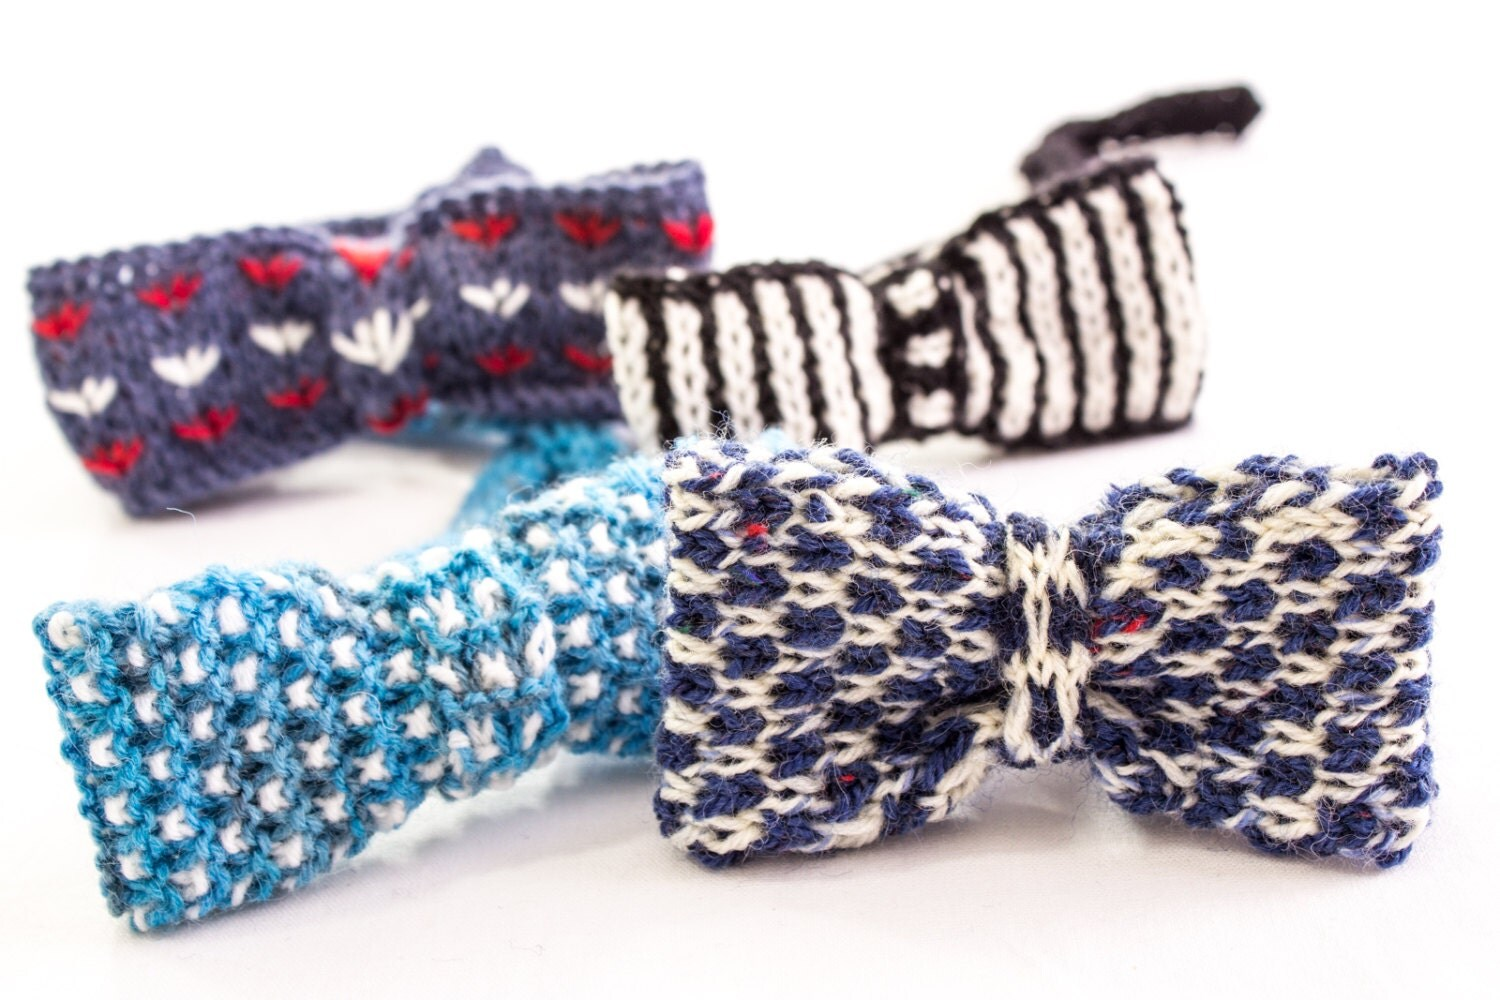 Bow Tie Knitting Pattern : KNITTING PATTERN Bow Ties Boys Knit Bow Ties Patterns Set